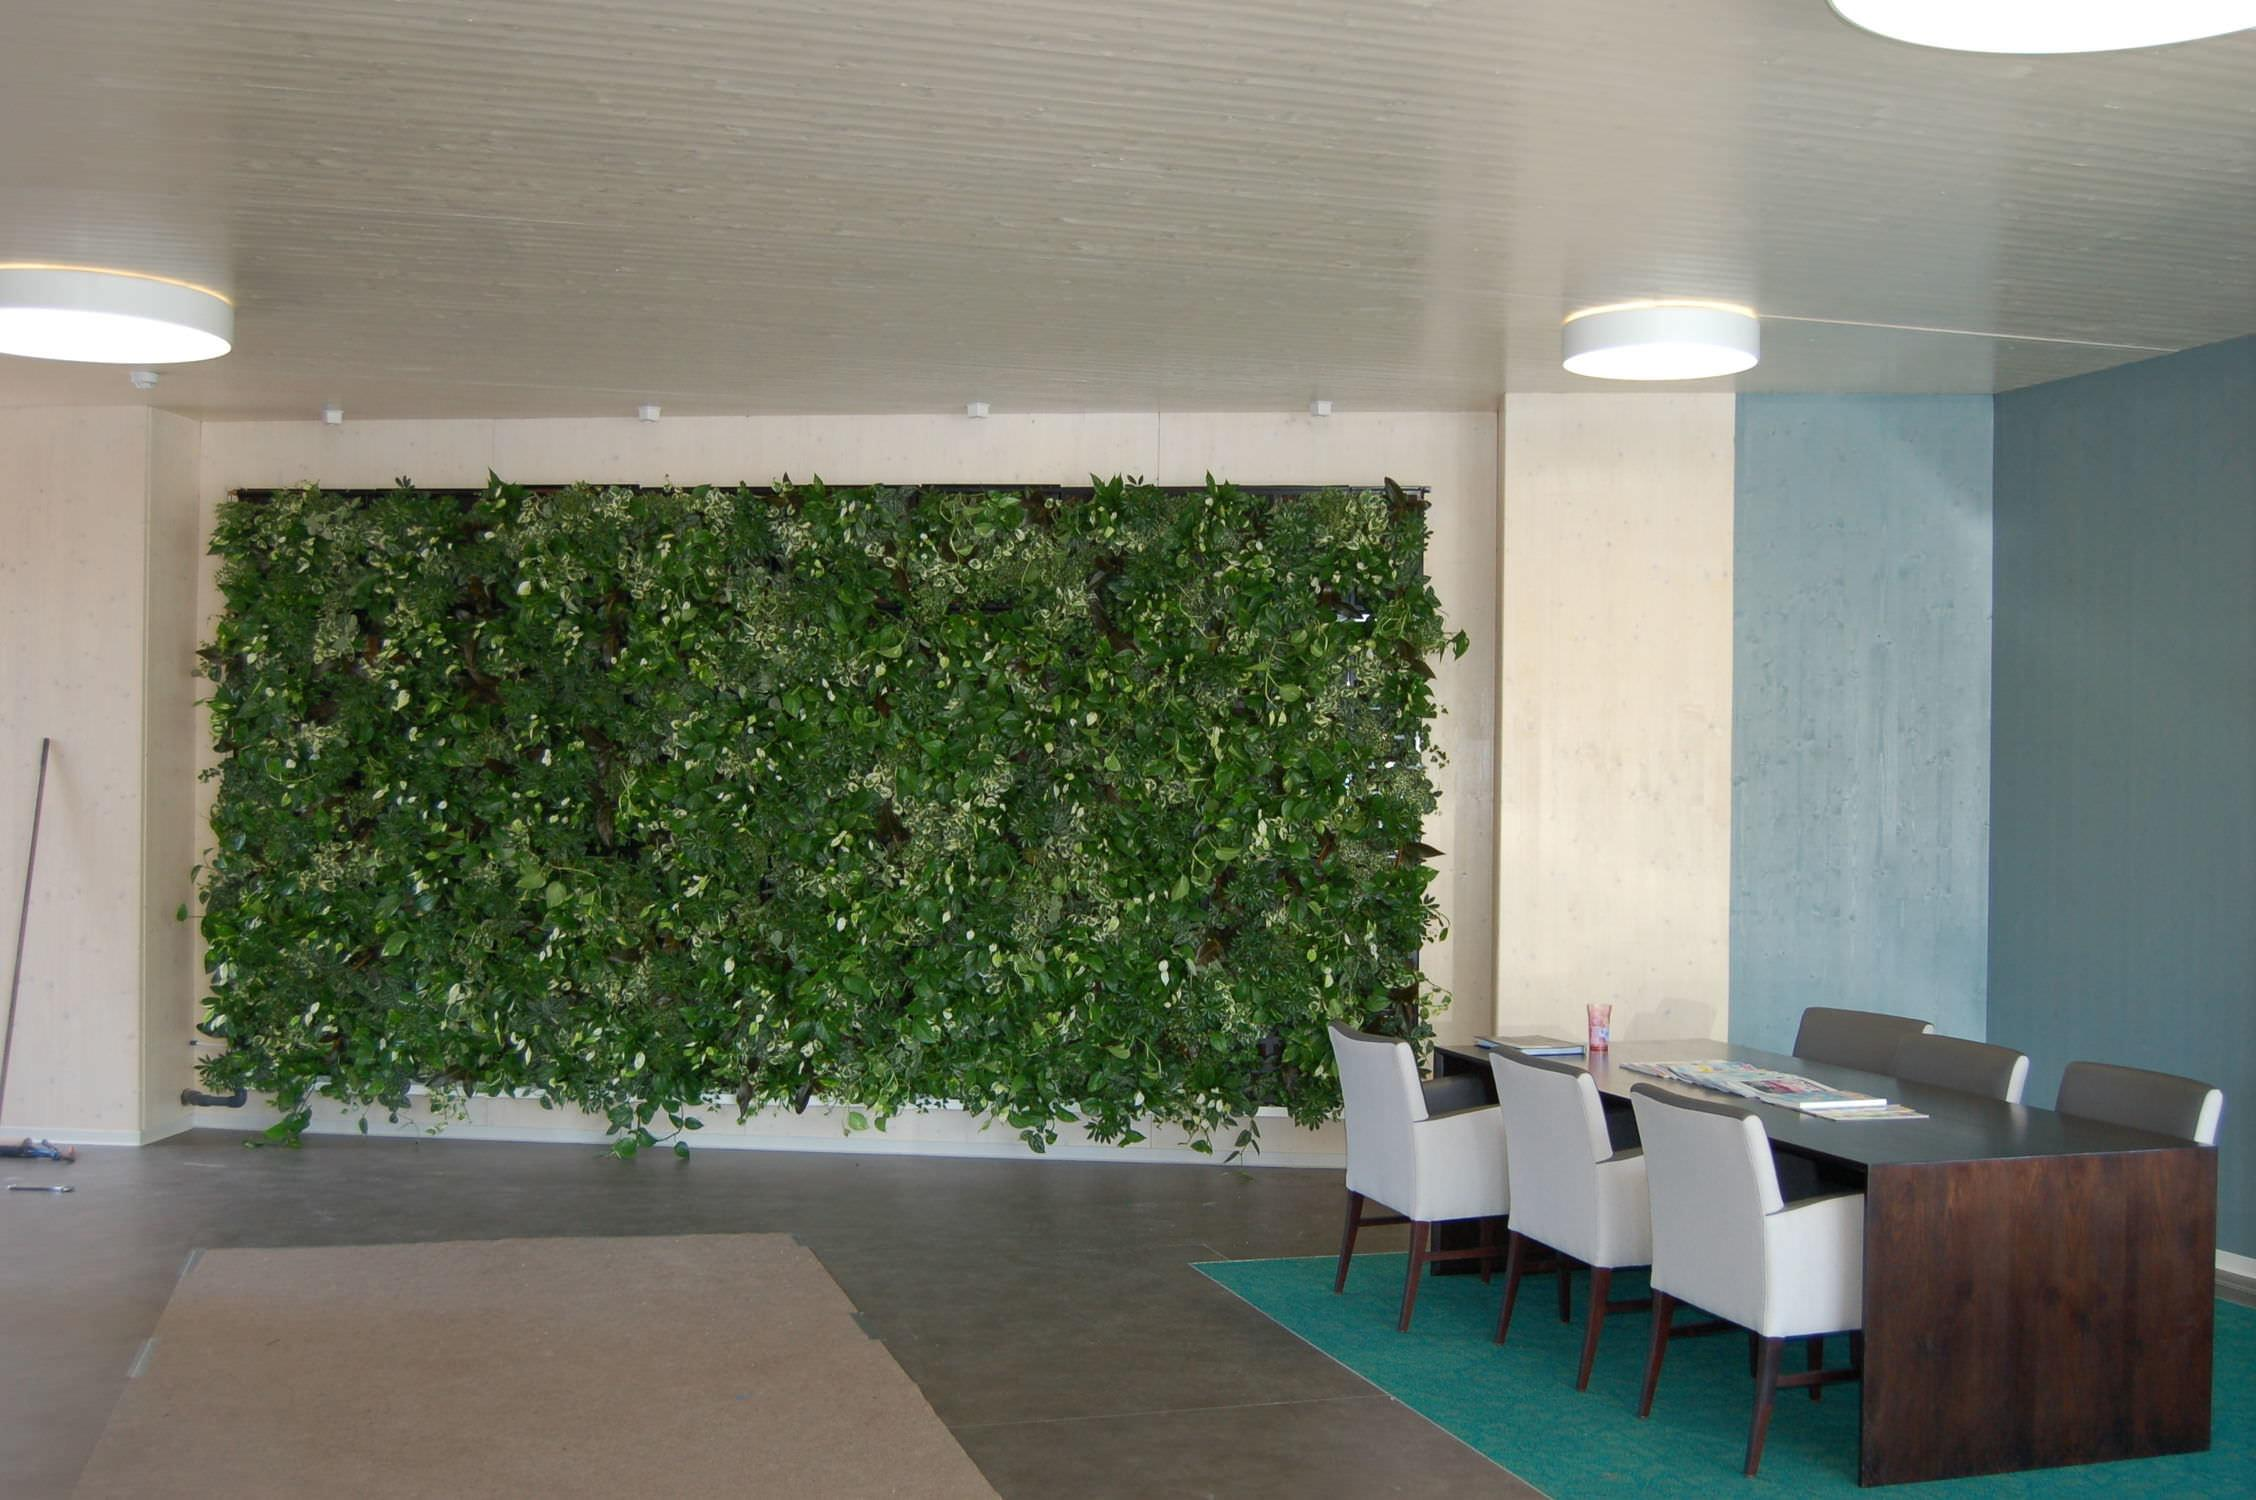 Wonderful Cafe Decoration Outdoor Green Wall Design